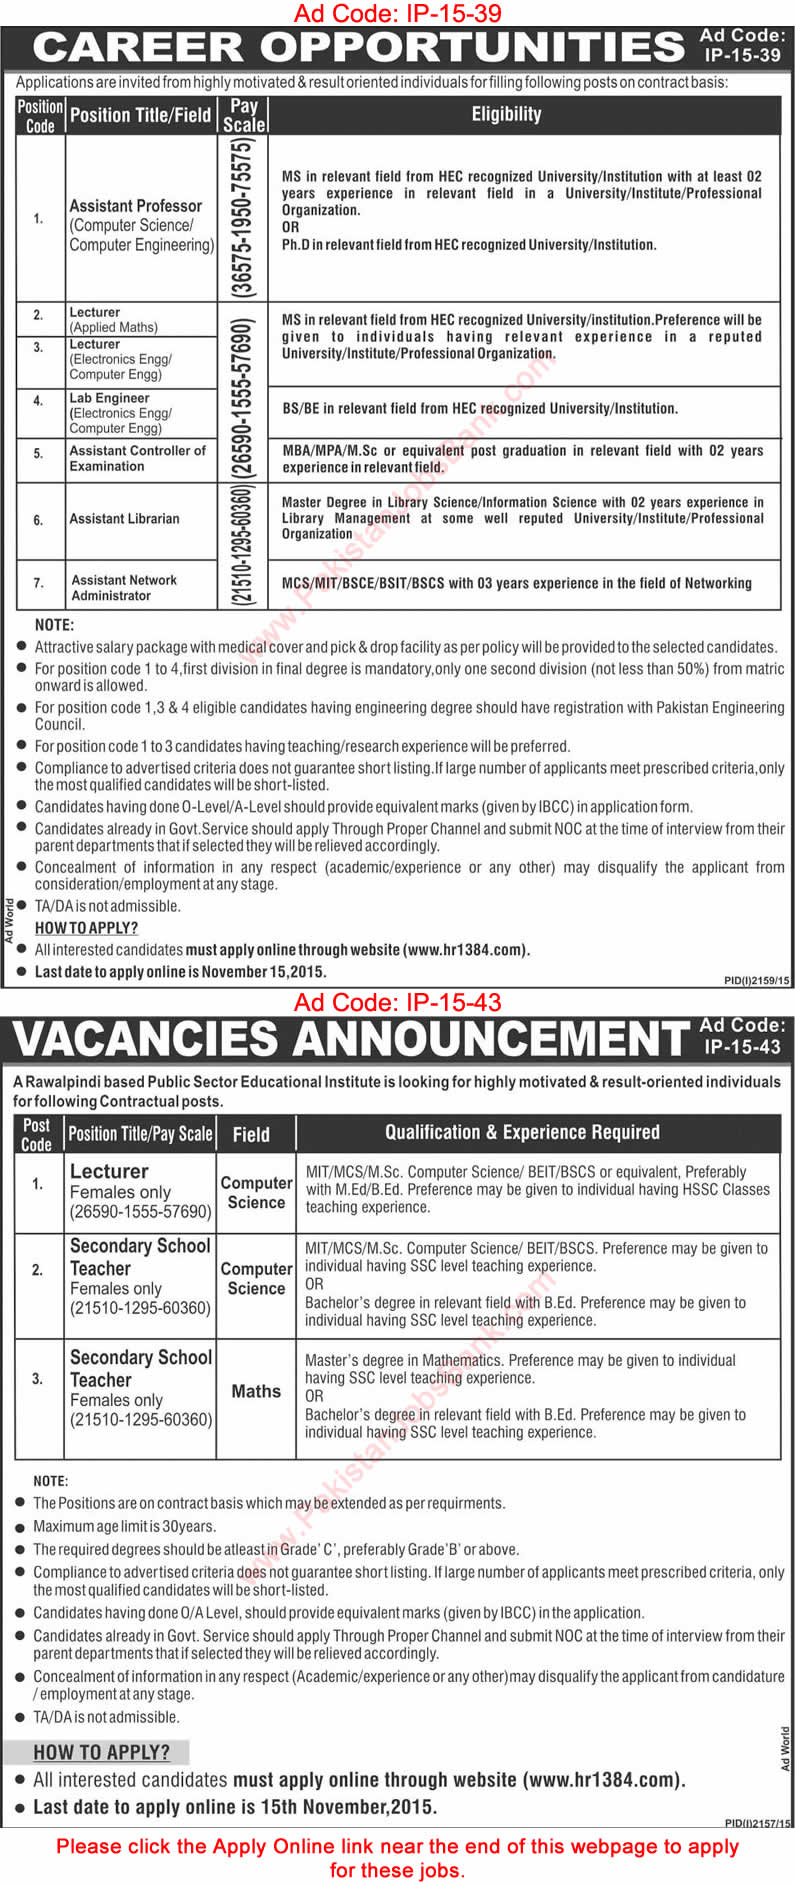 www.hr1384.com Jobs November 2015 KRL Online Apply Public Sector Educational Institutes Latest